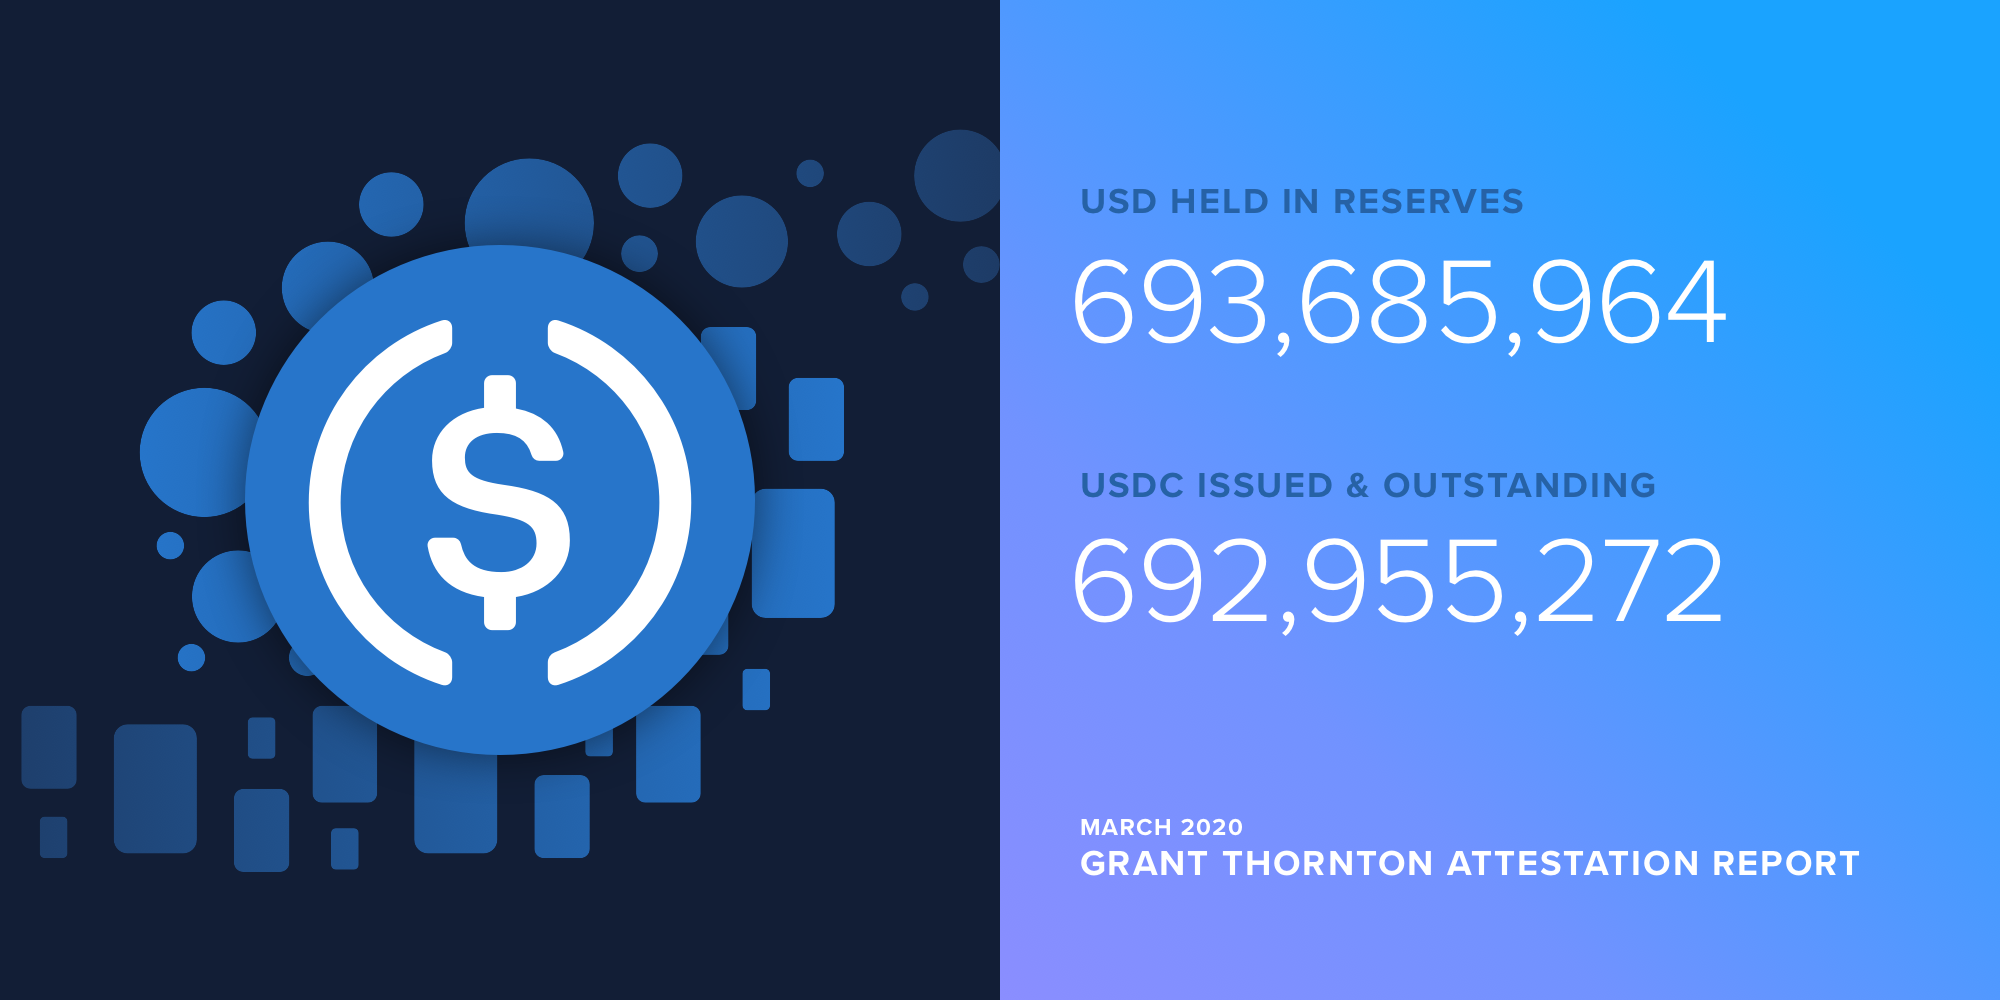 USDC Reserve Attestation Report from Grant Thornton LLP — March 2020